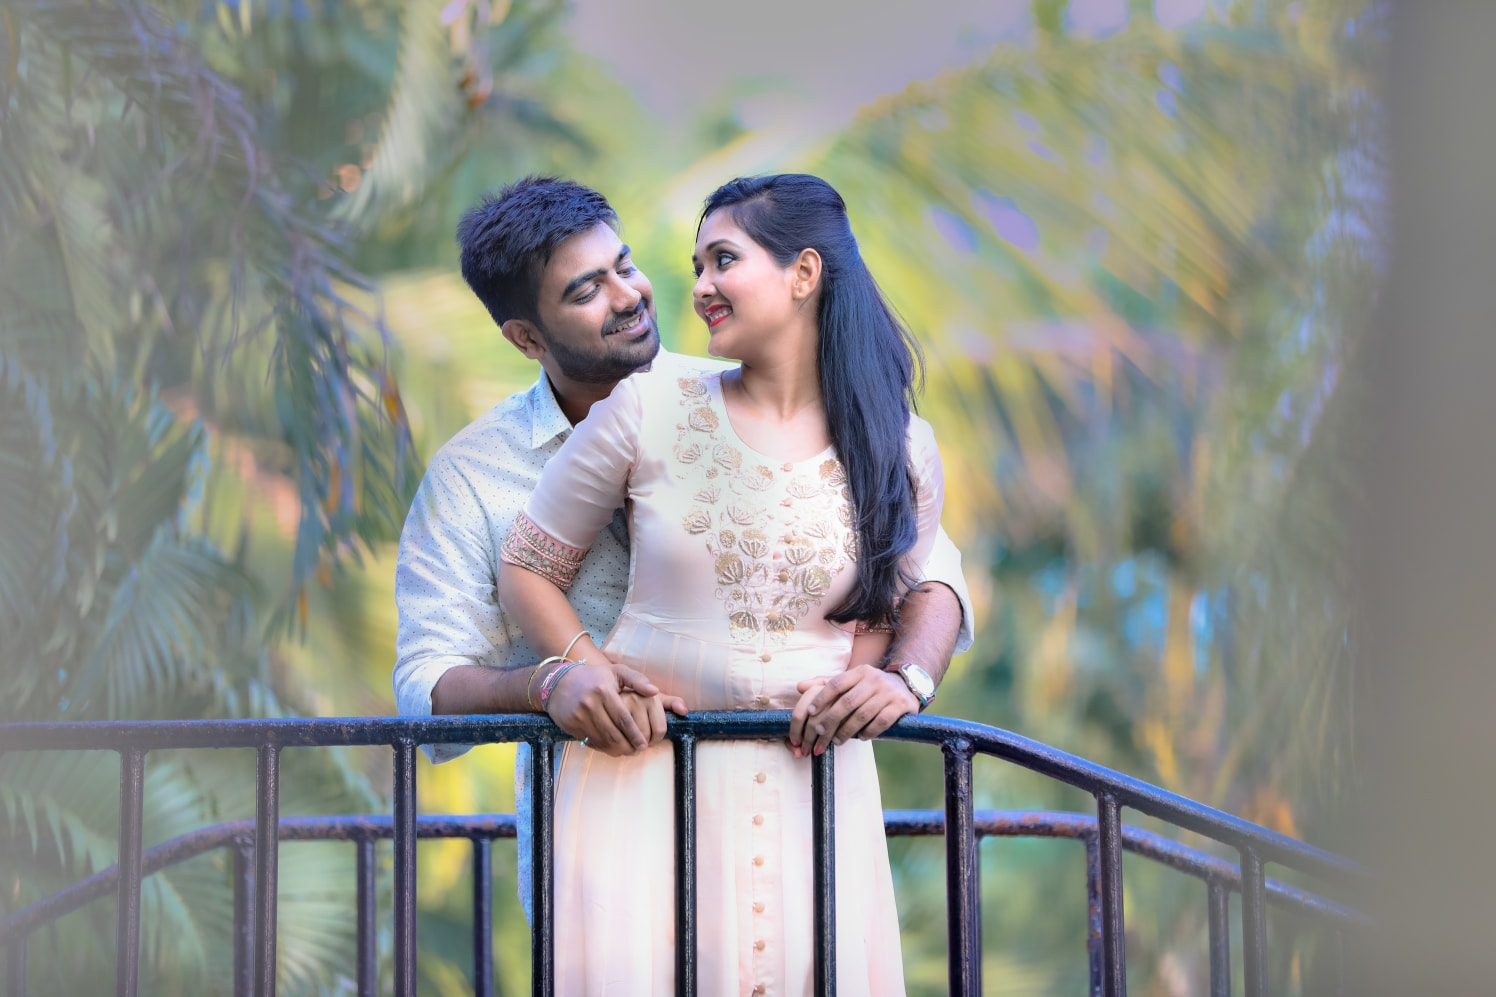 Glance of ardent love by The Fisheye world institute of photography and studios Wedding-photography | Weddings Photos & Ideas